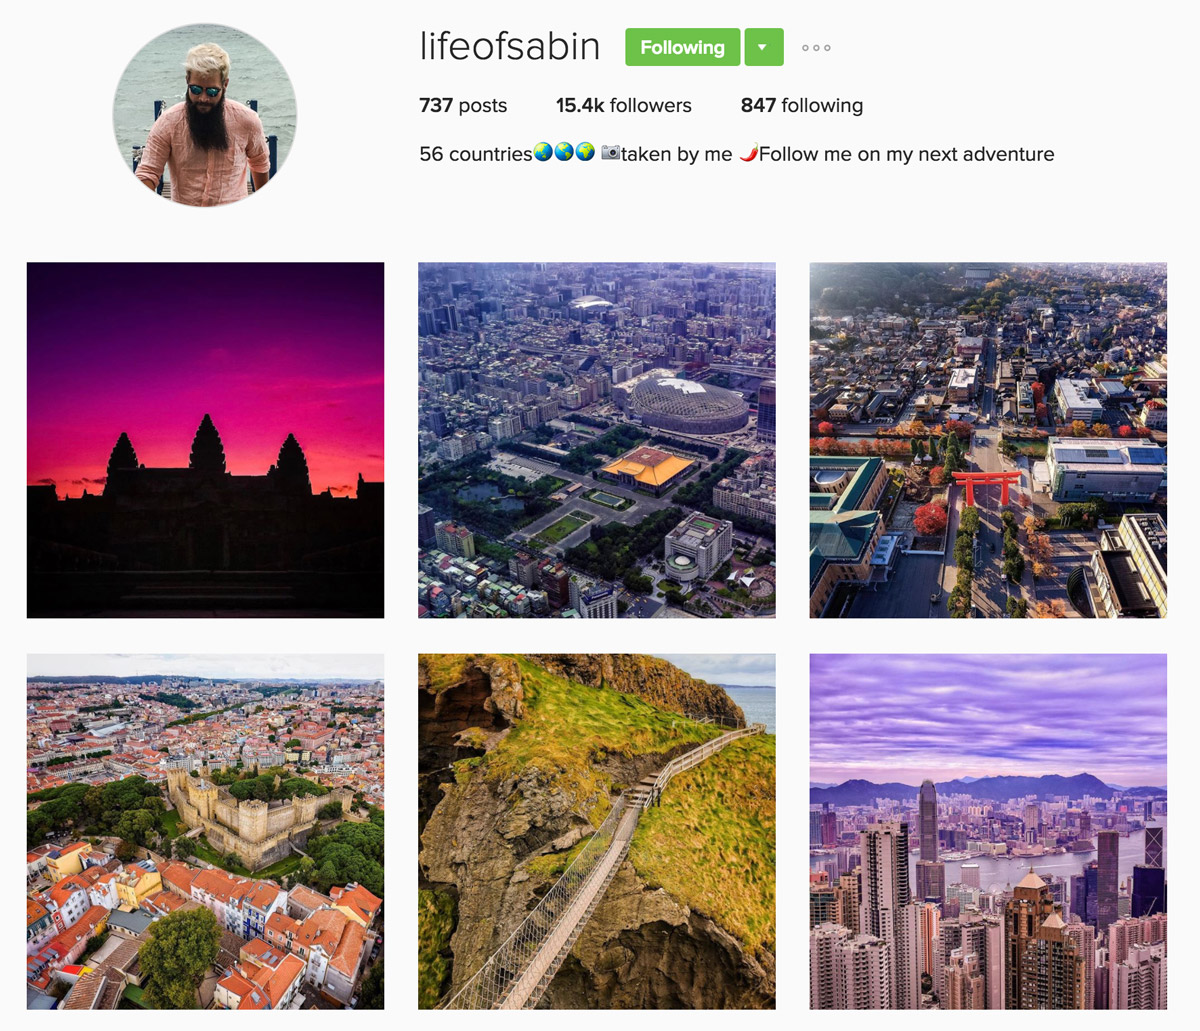 Travel-Instagram-Life-of-Sabin